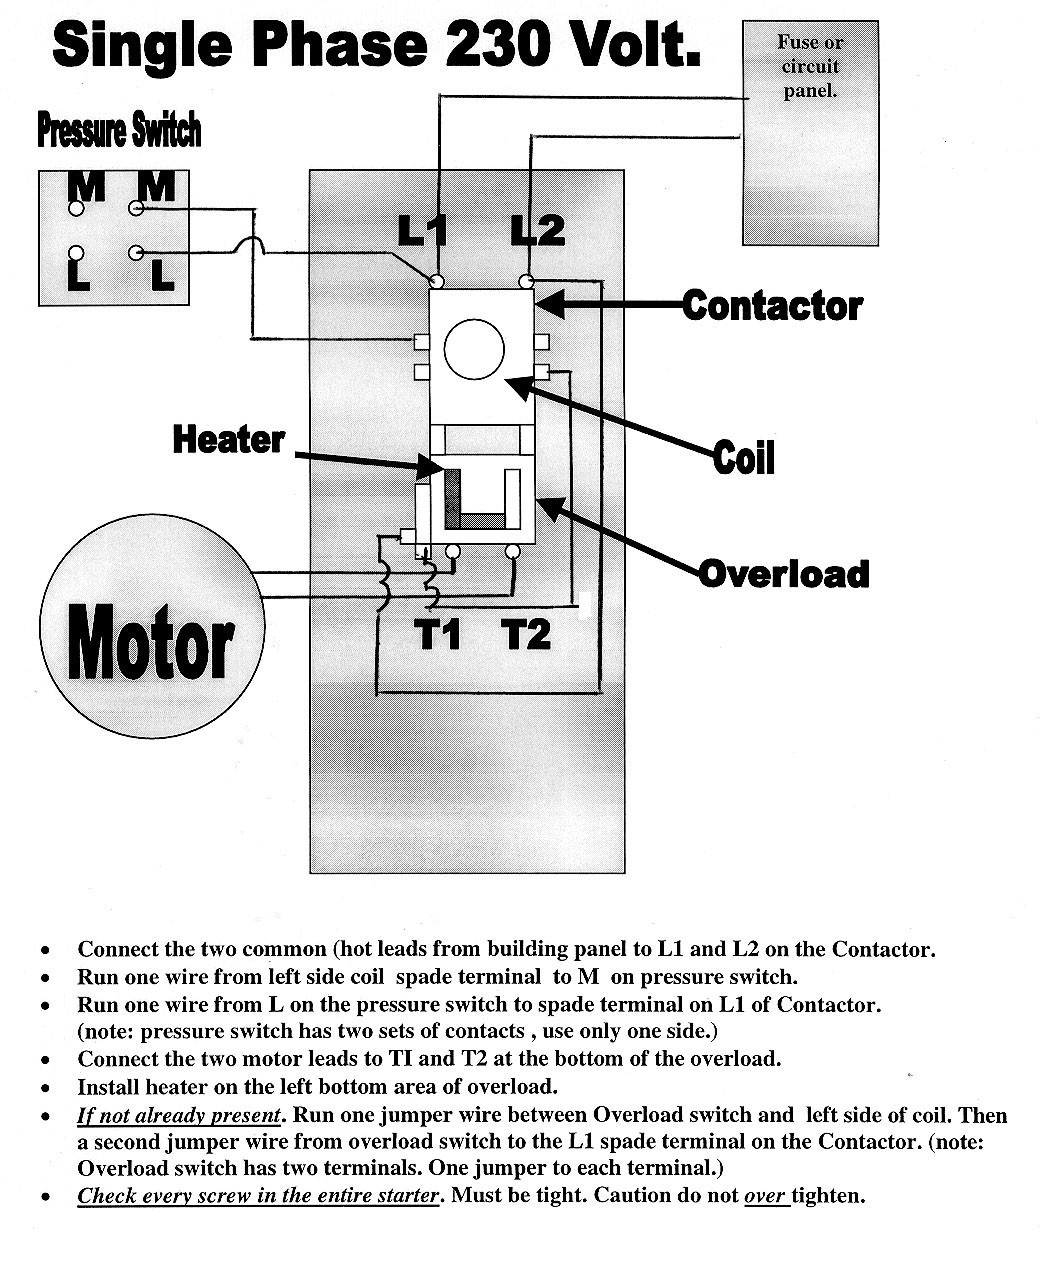 Variable Speed Electric Motor Single Phase Wiring Diagram - Auto Electrical  Wiring Diagramlednings-diagramh.webredirect.org